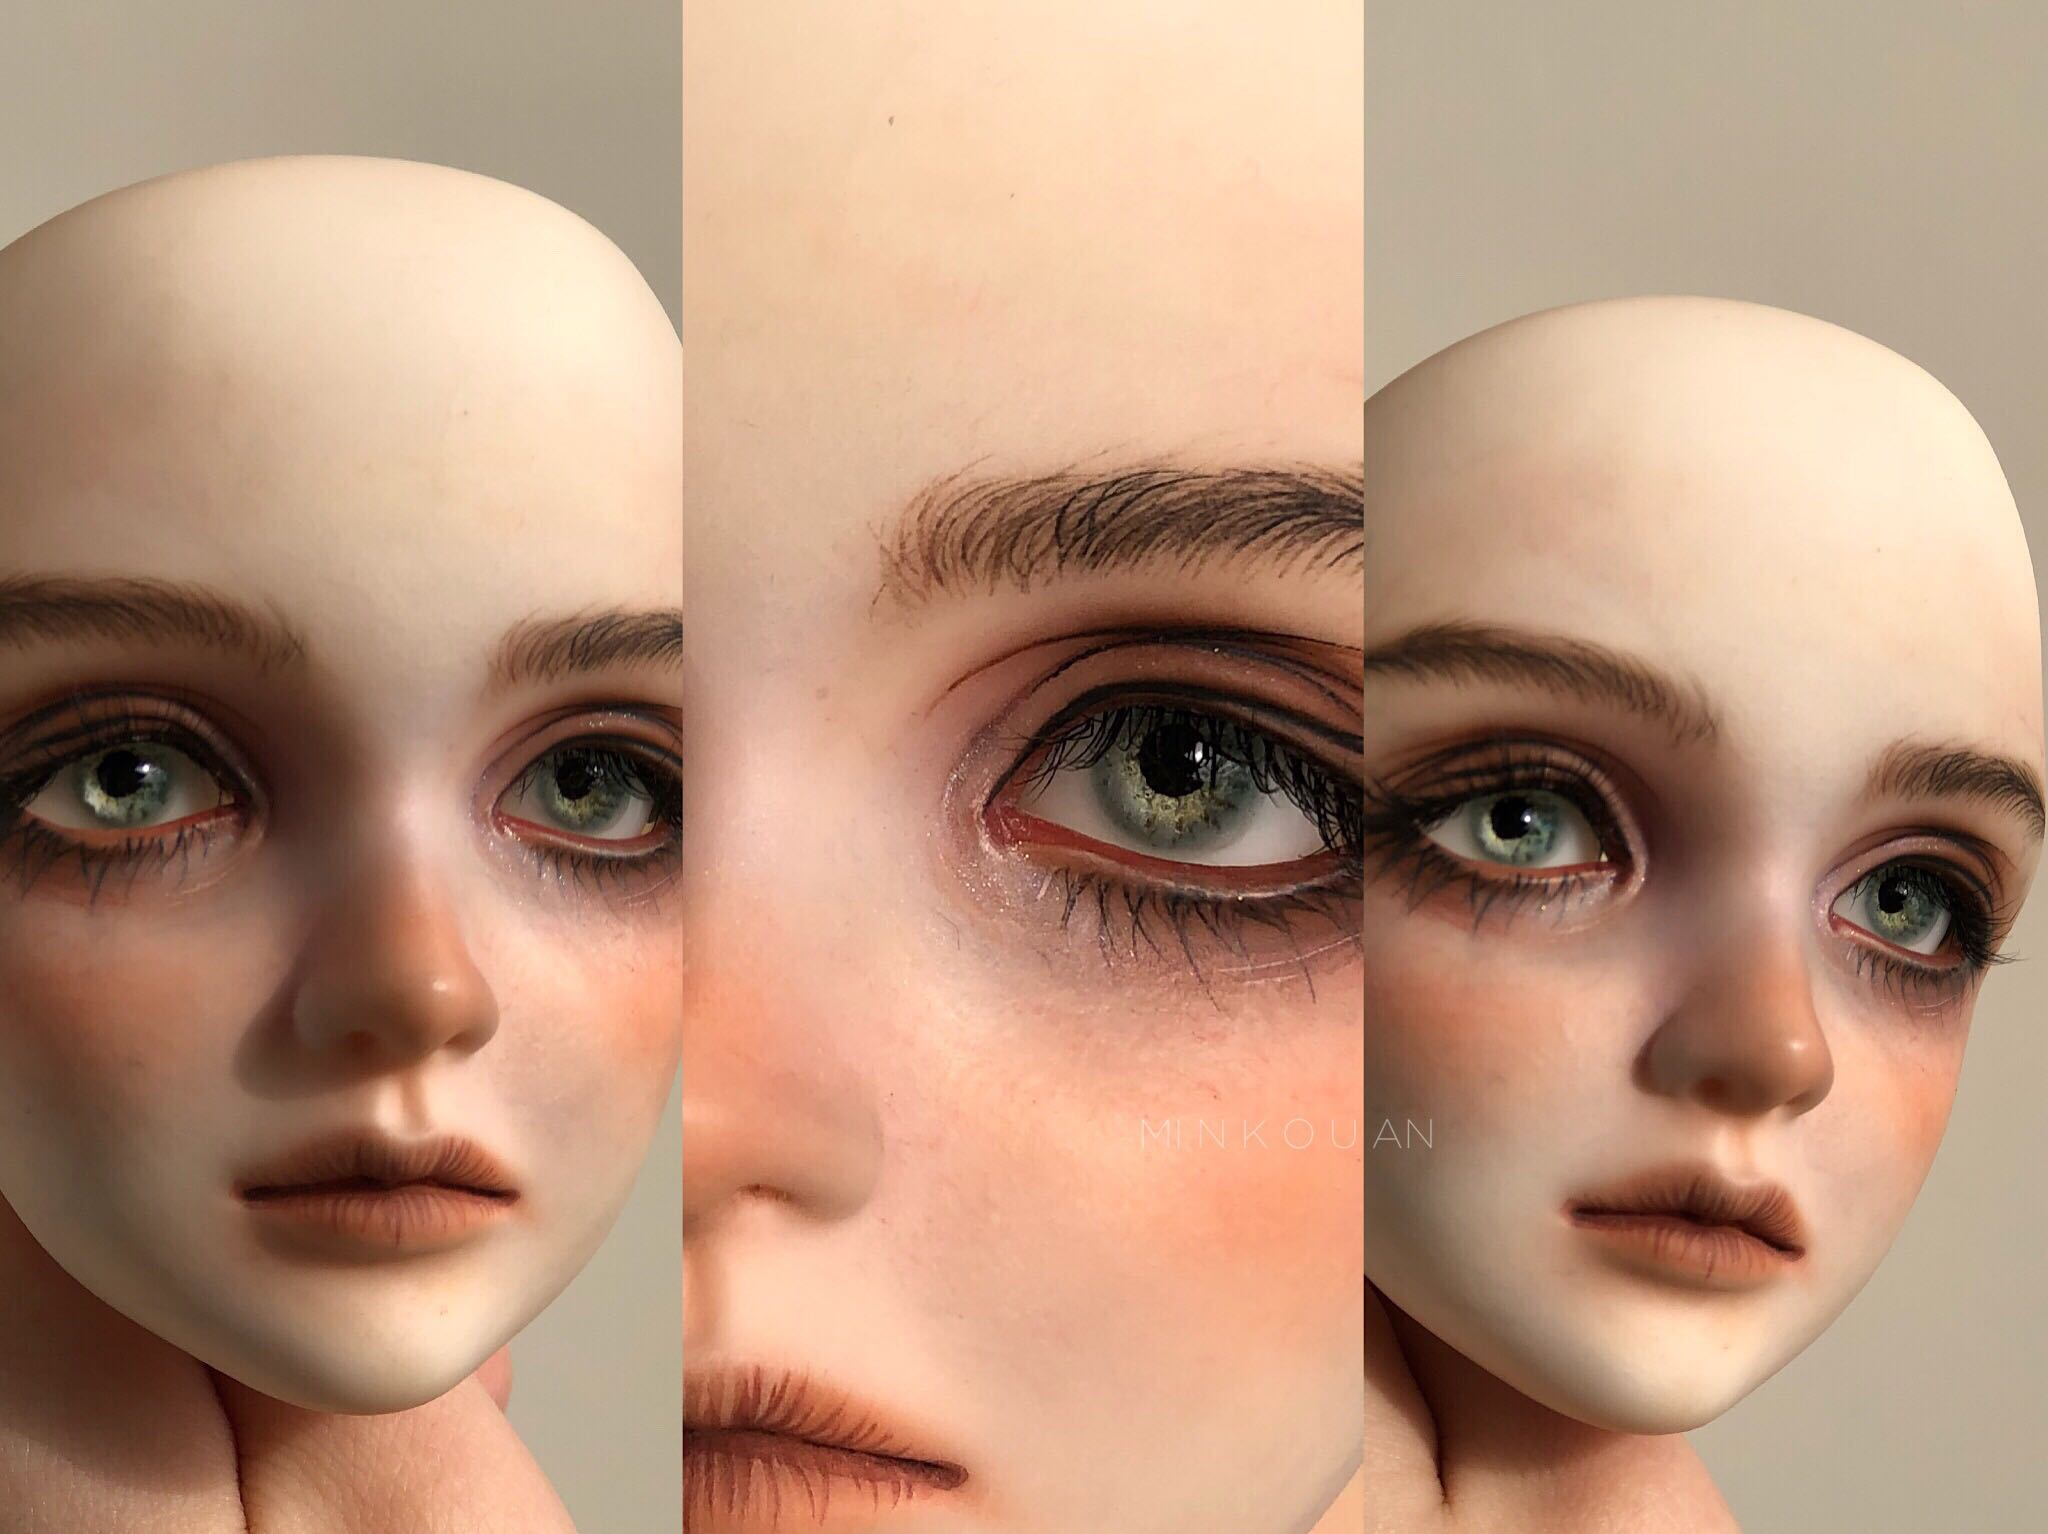 BJD resin eye five types of human eye collection blue green yellow gray mixed color eye doll accessories